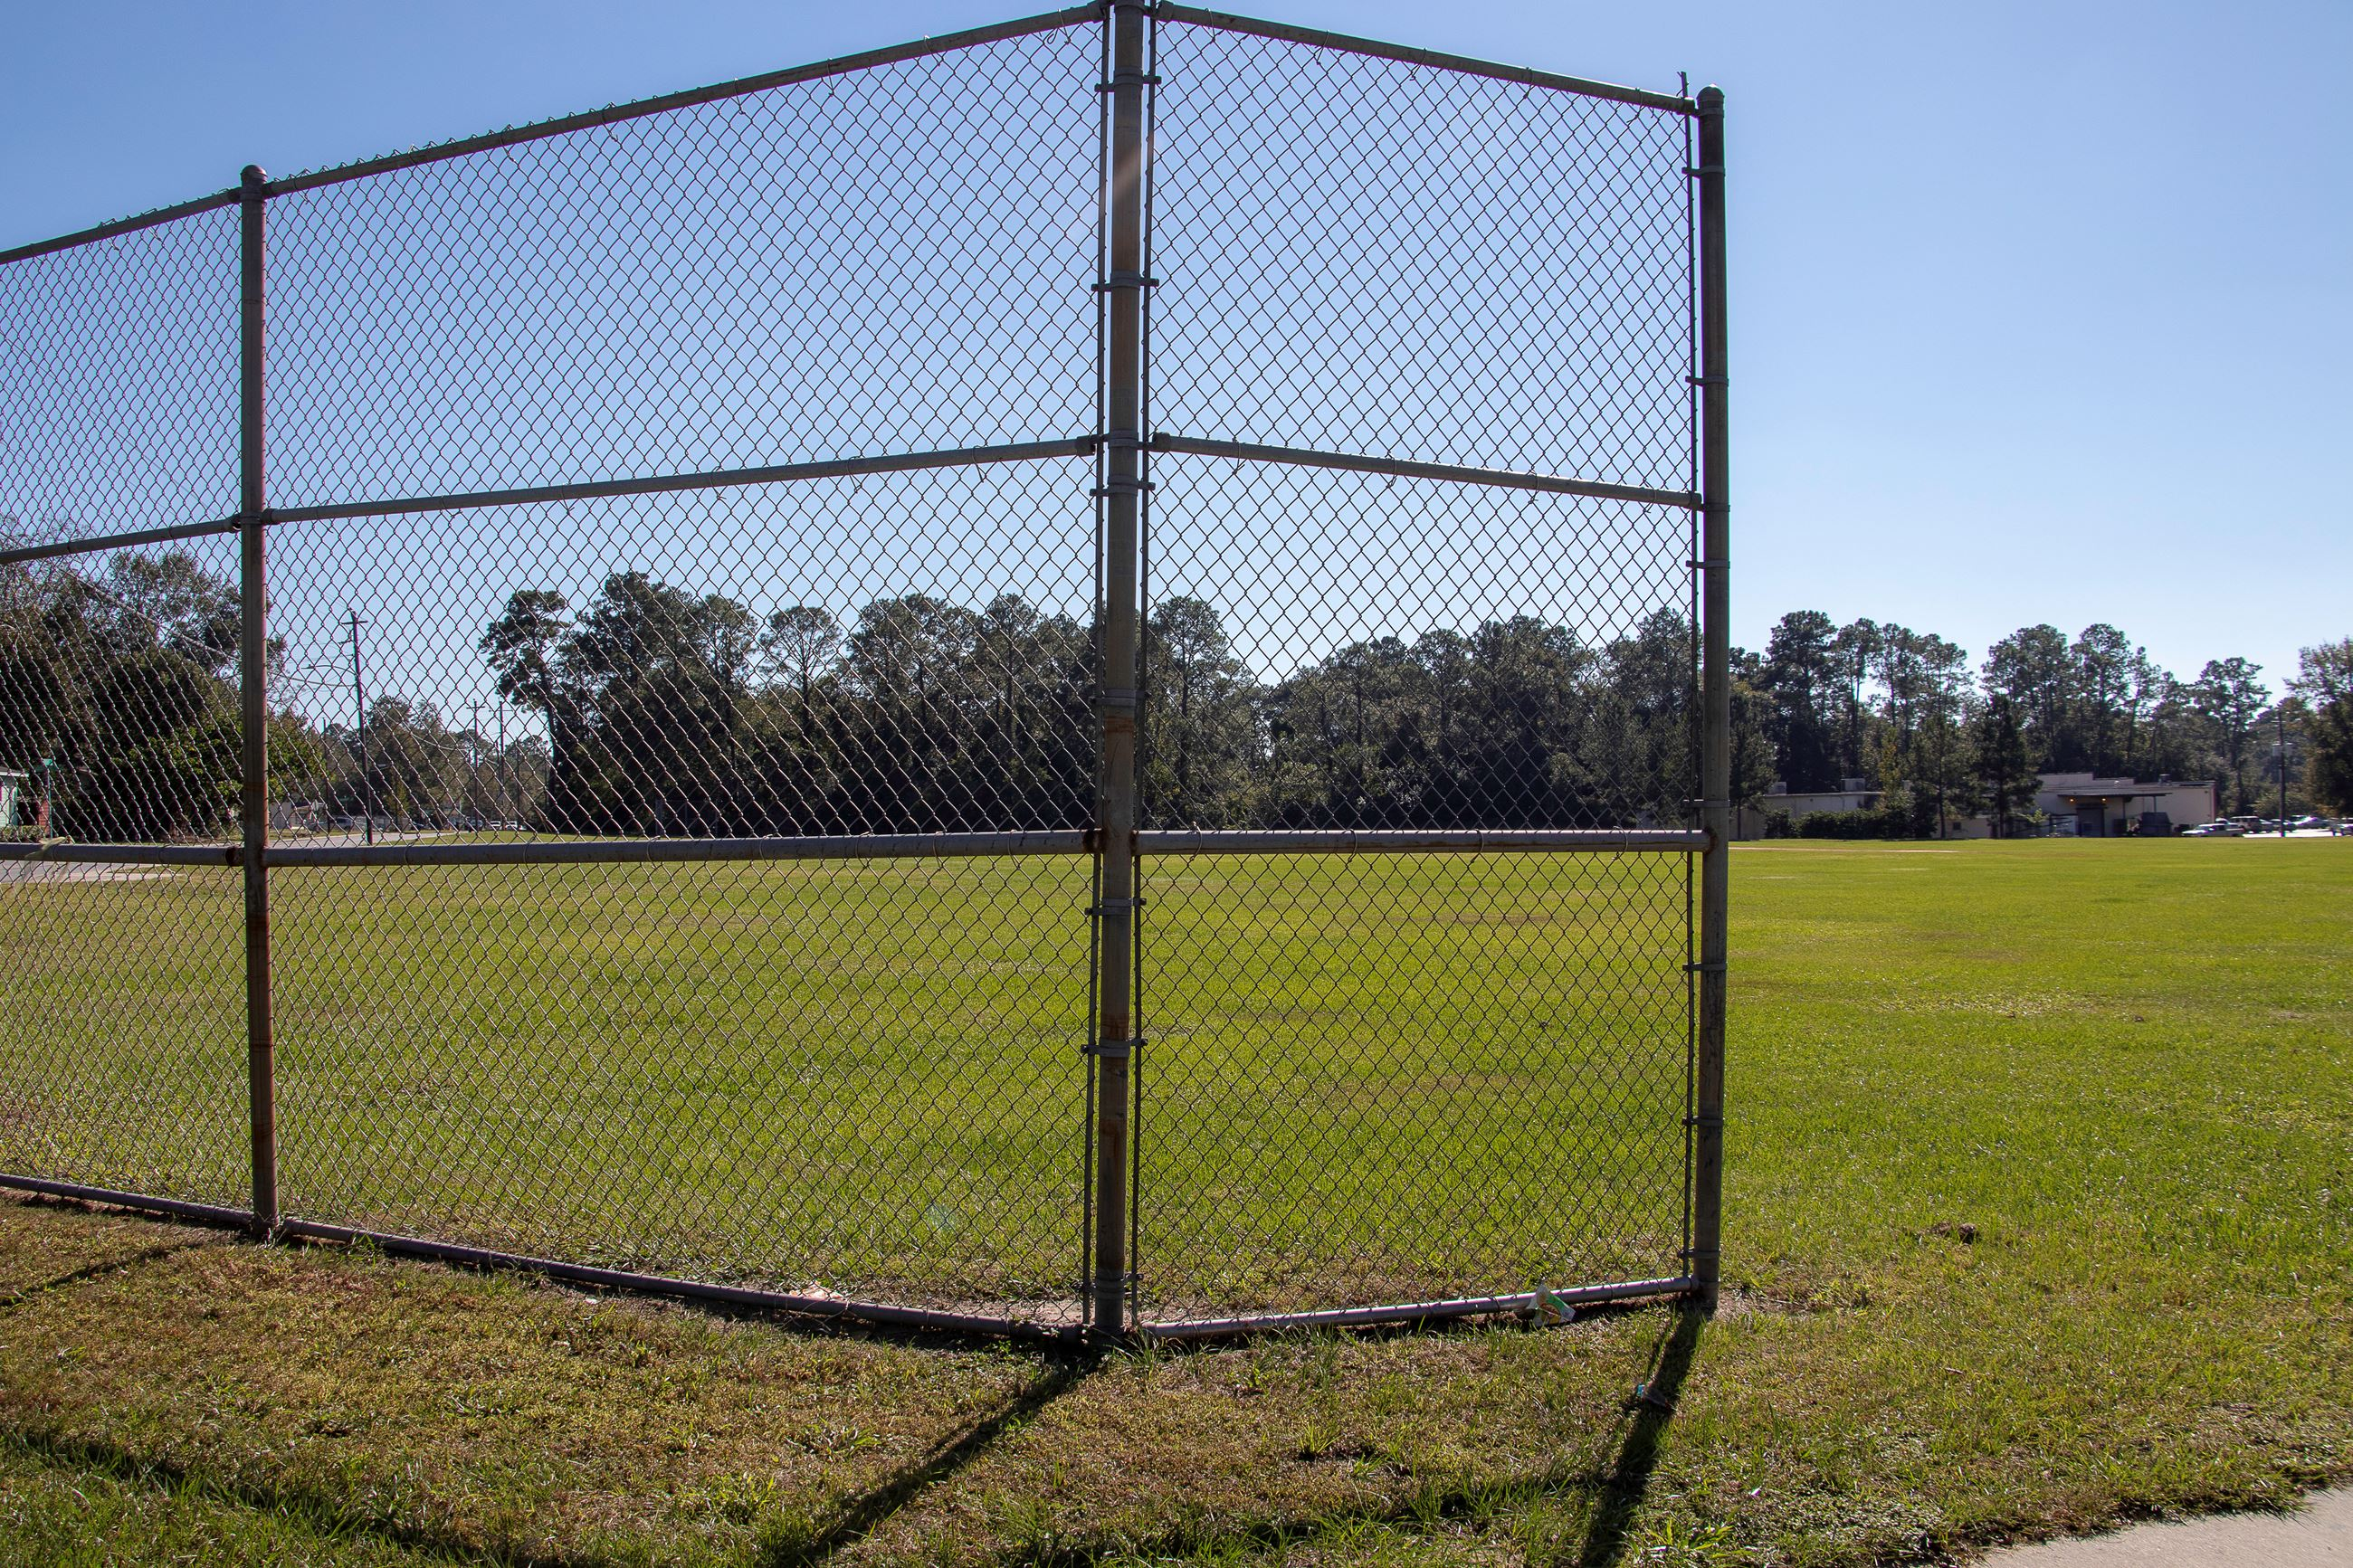 An image of a baseball backstop at a large field.